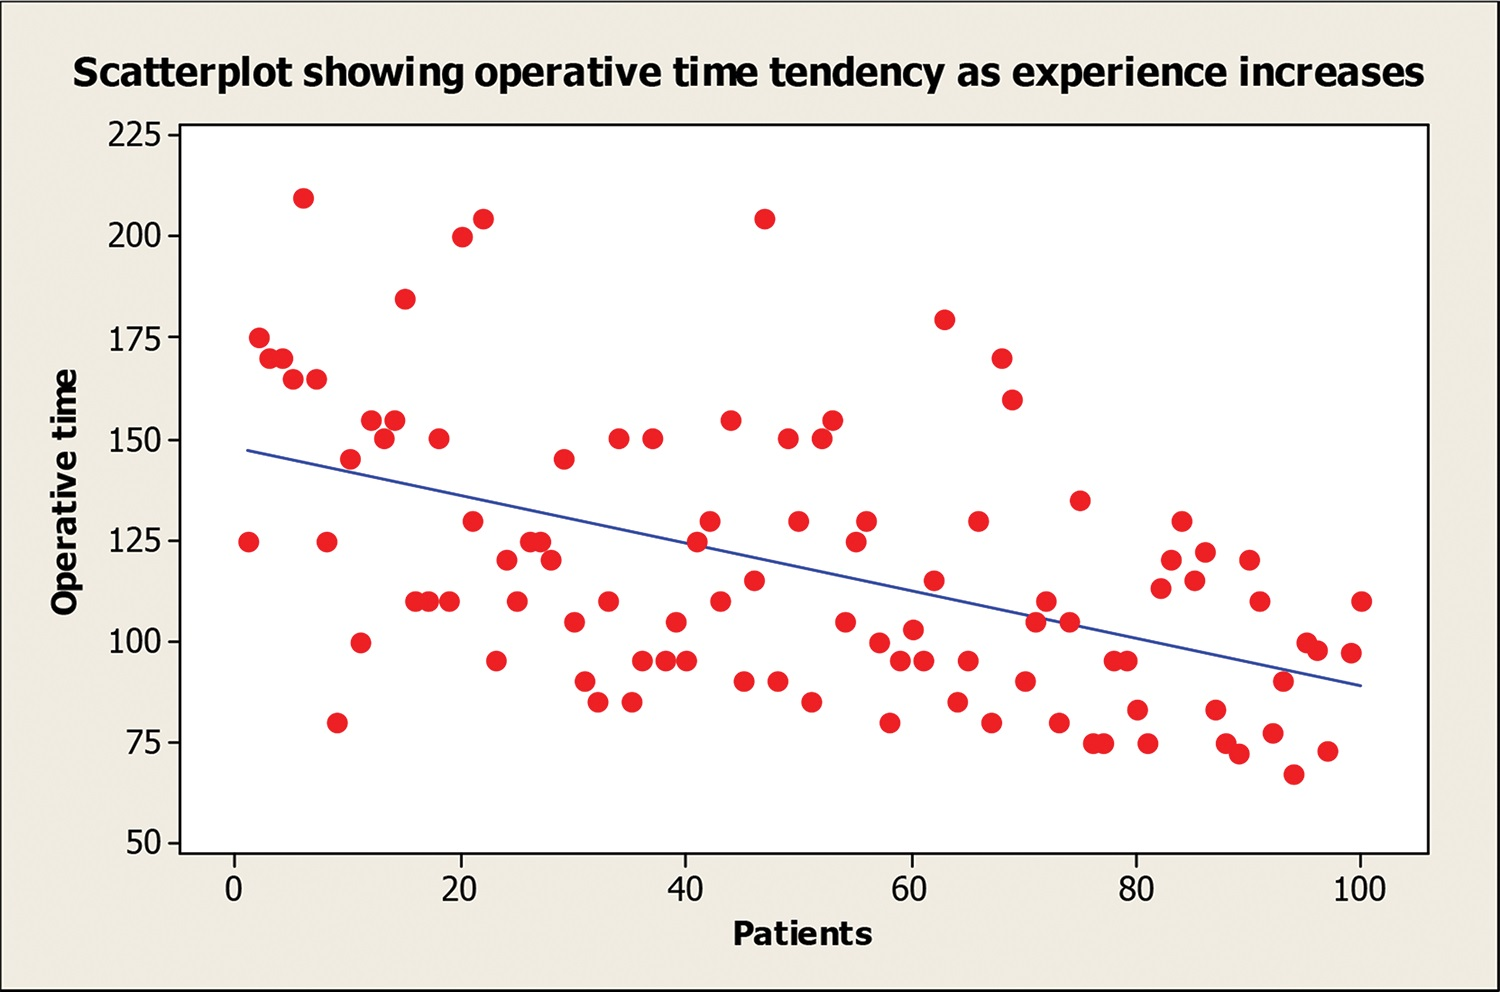 Analysis of the operative time.